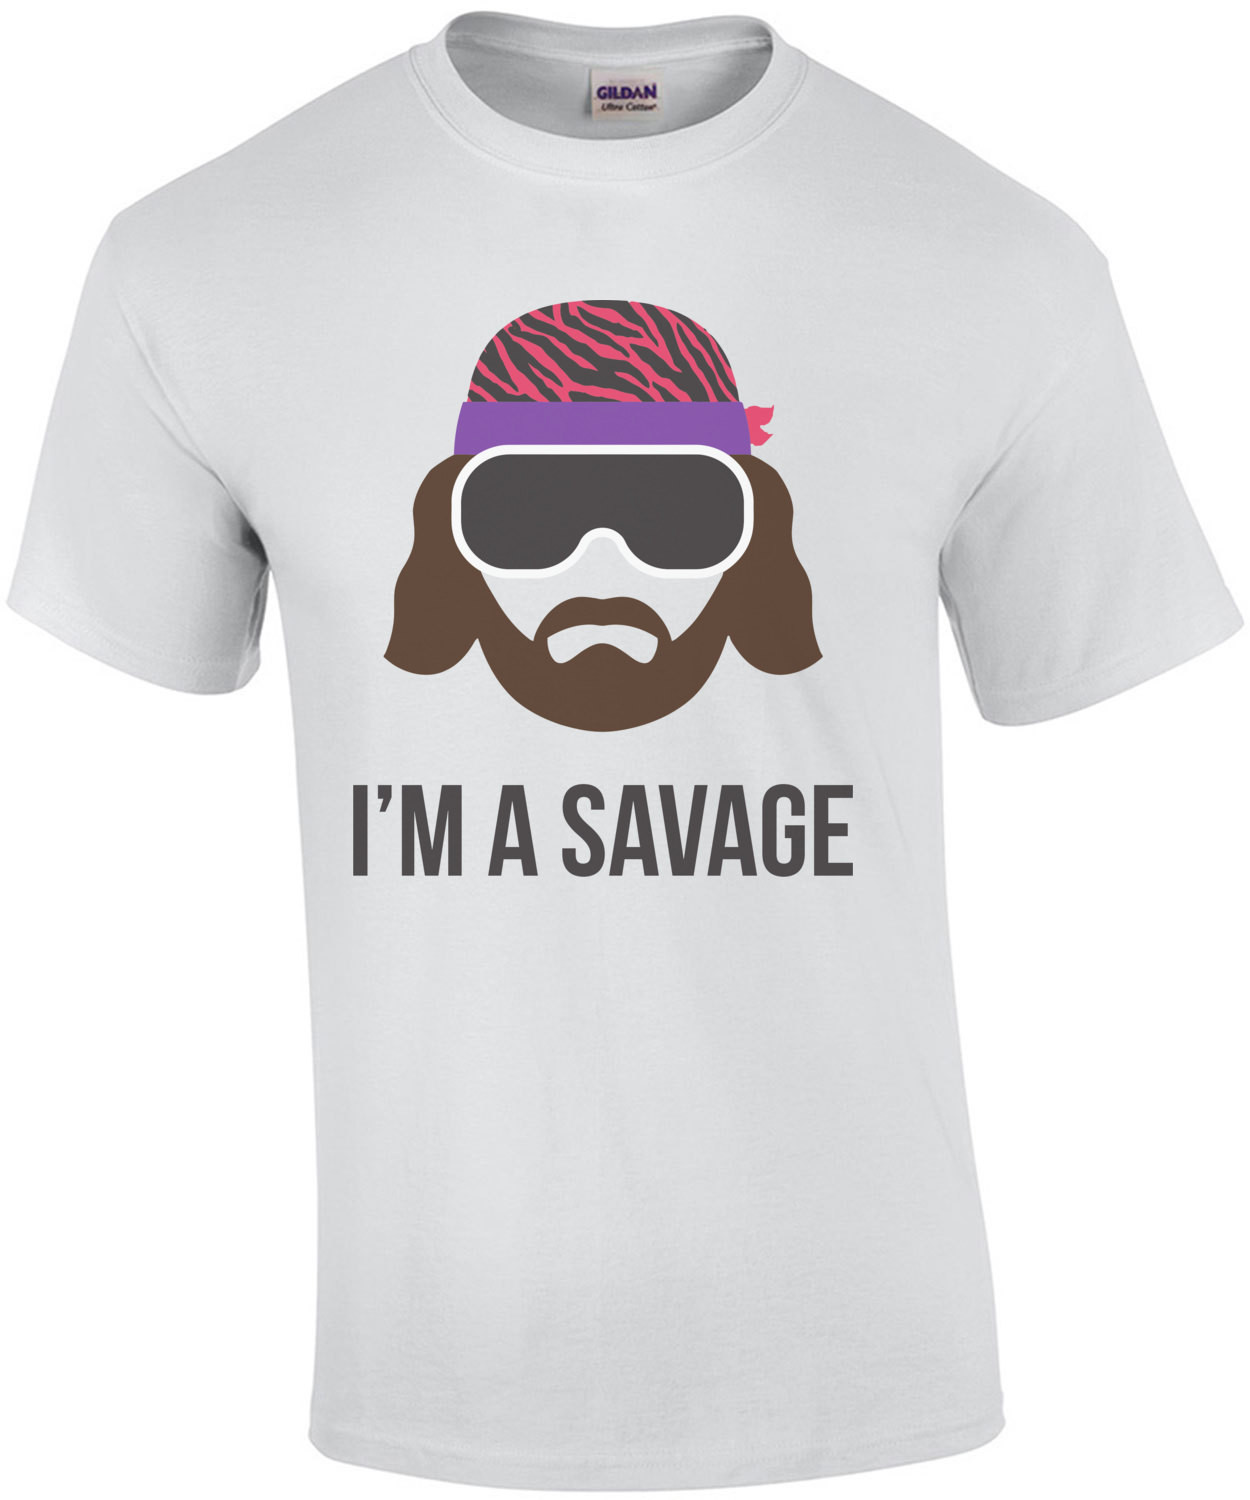 I'm a Savage Macho Man Randy Savage T-Shirt